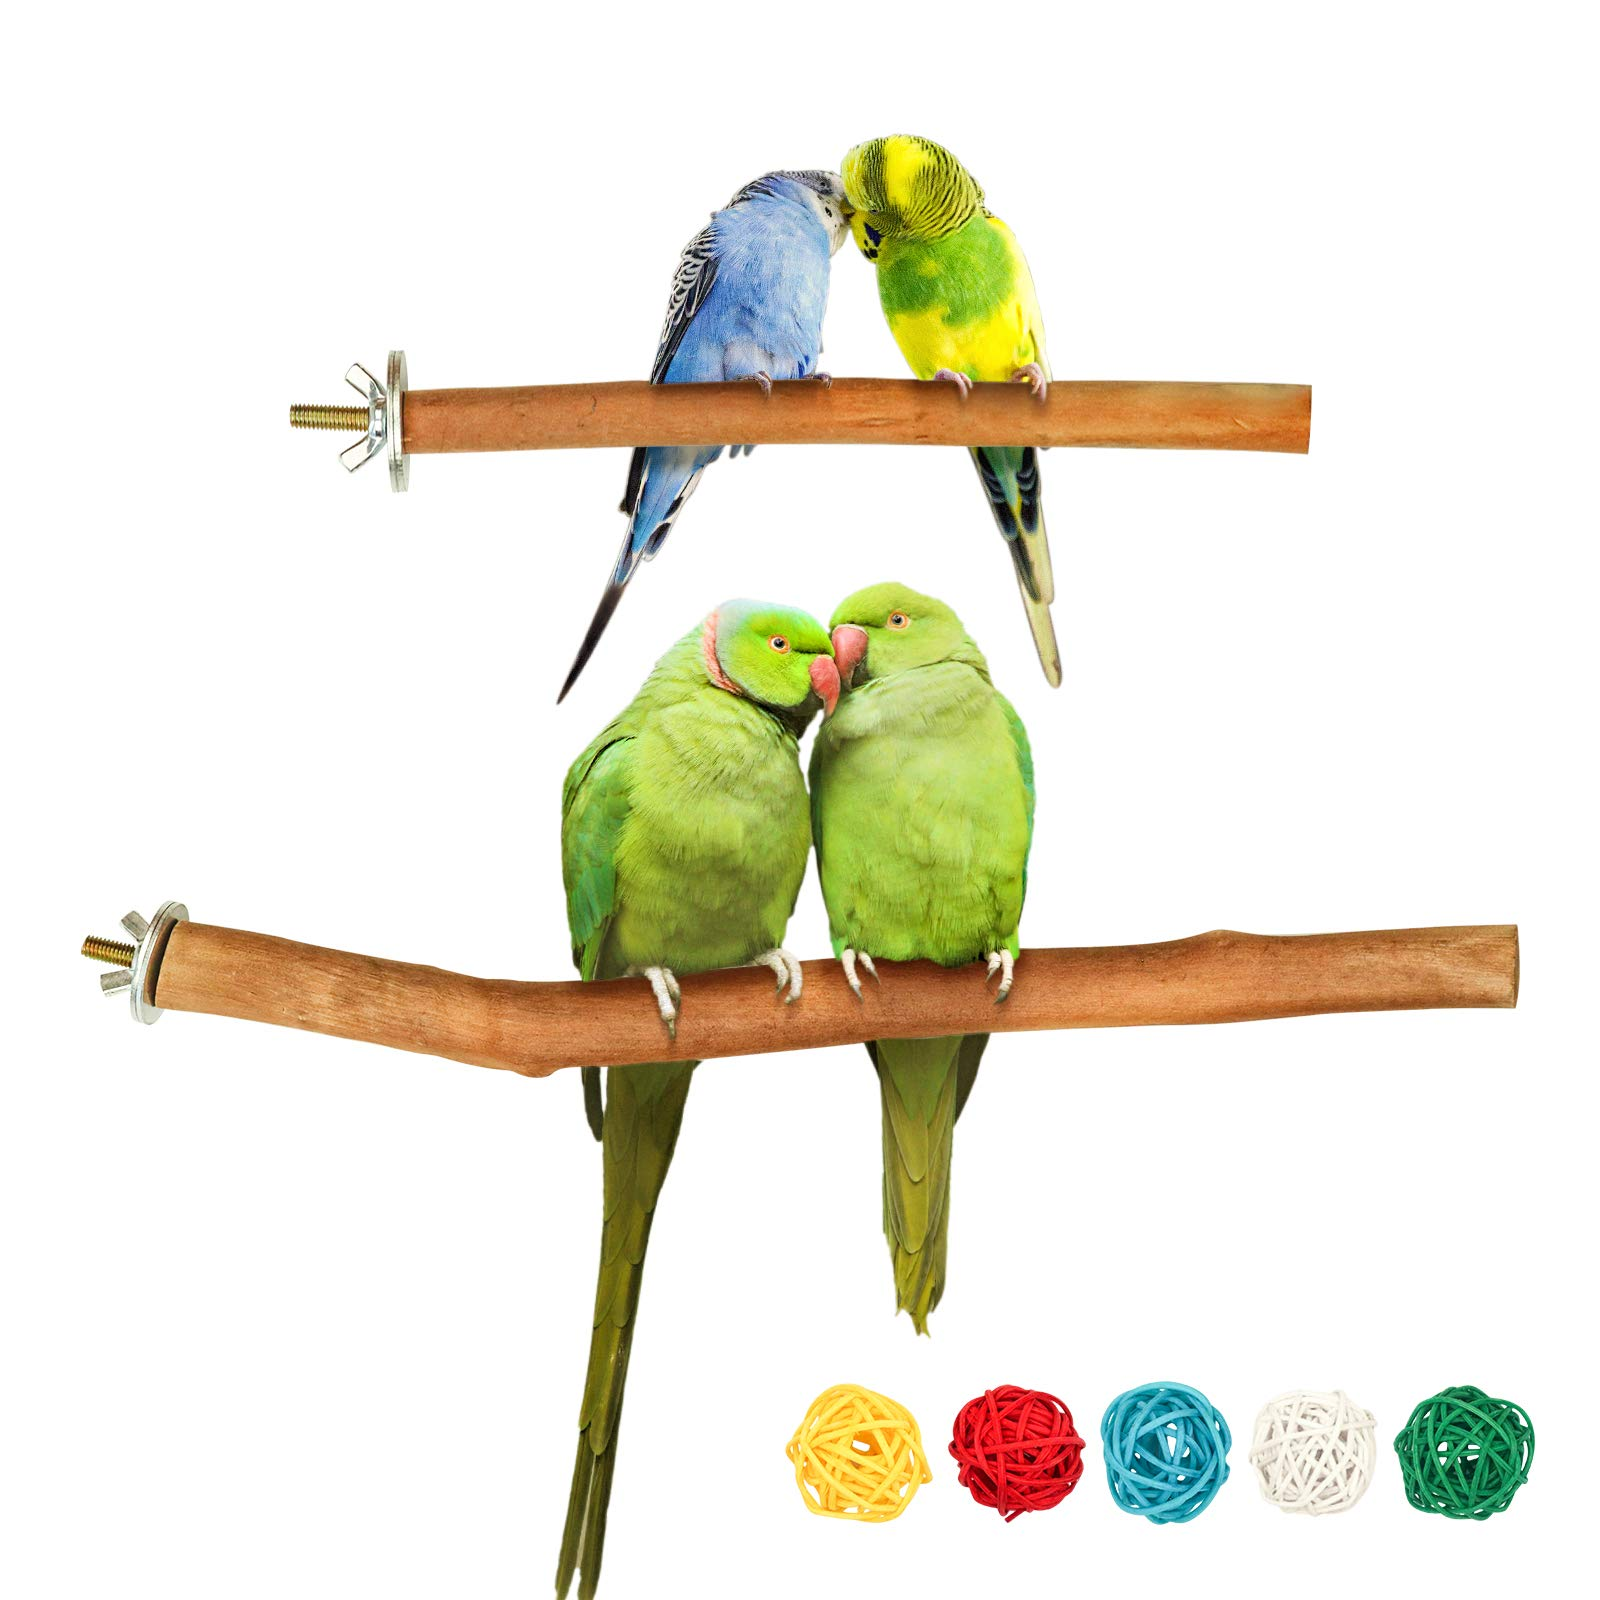 S-Mechanic Natural Bird Stand Perches for Small or Medium Parrots Bird cage